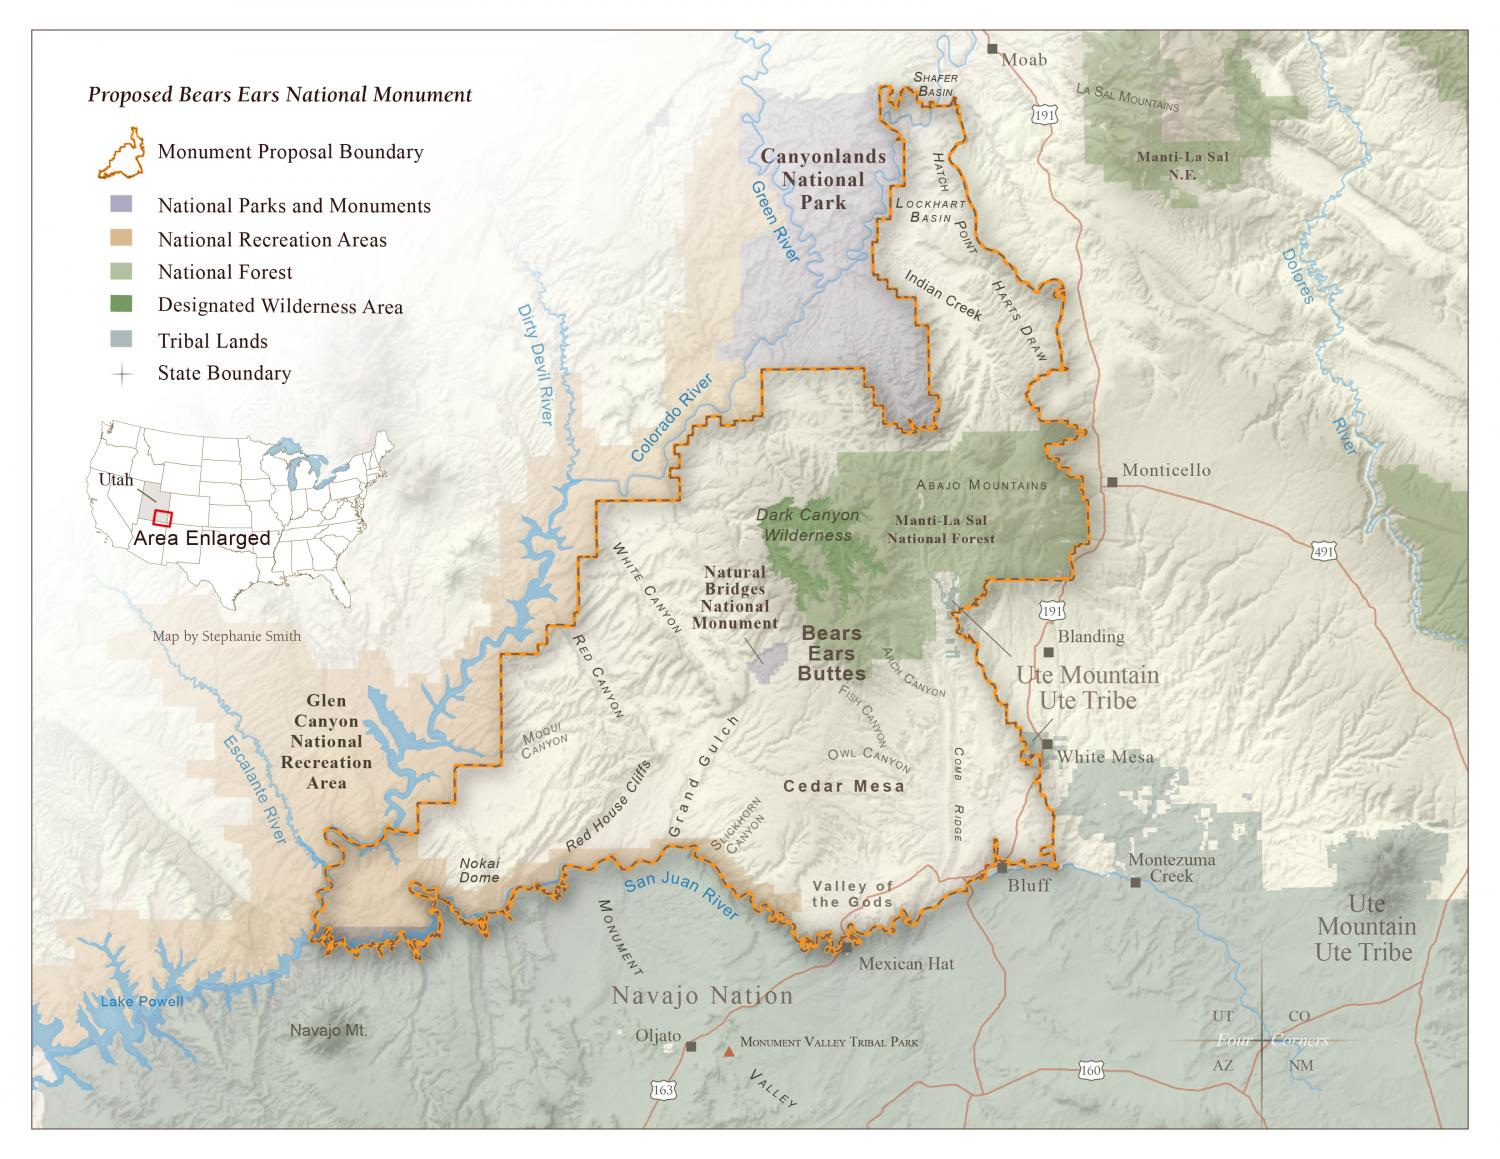 Proposed Bears Ears National Monument